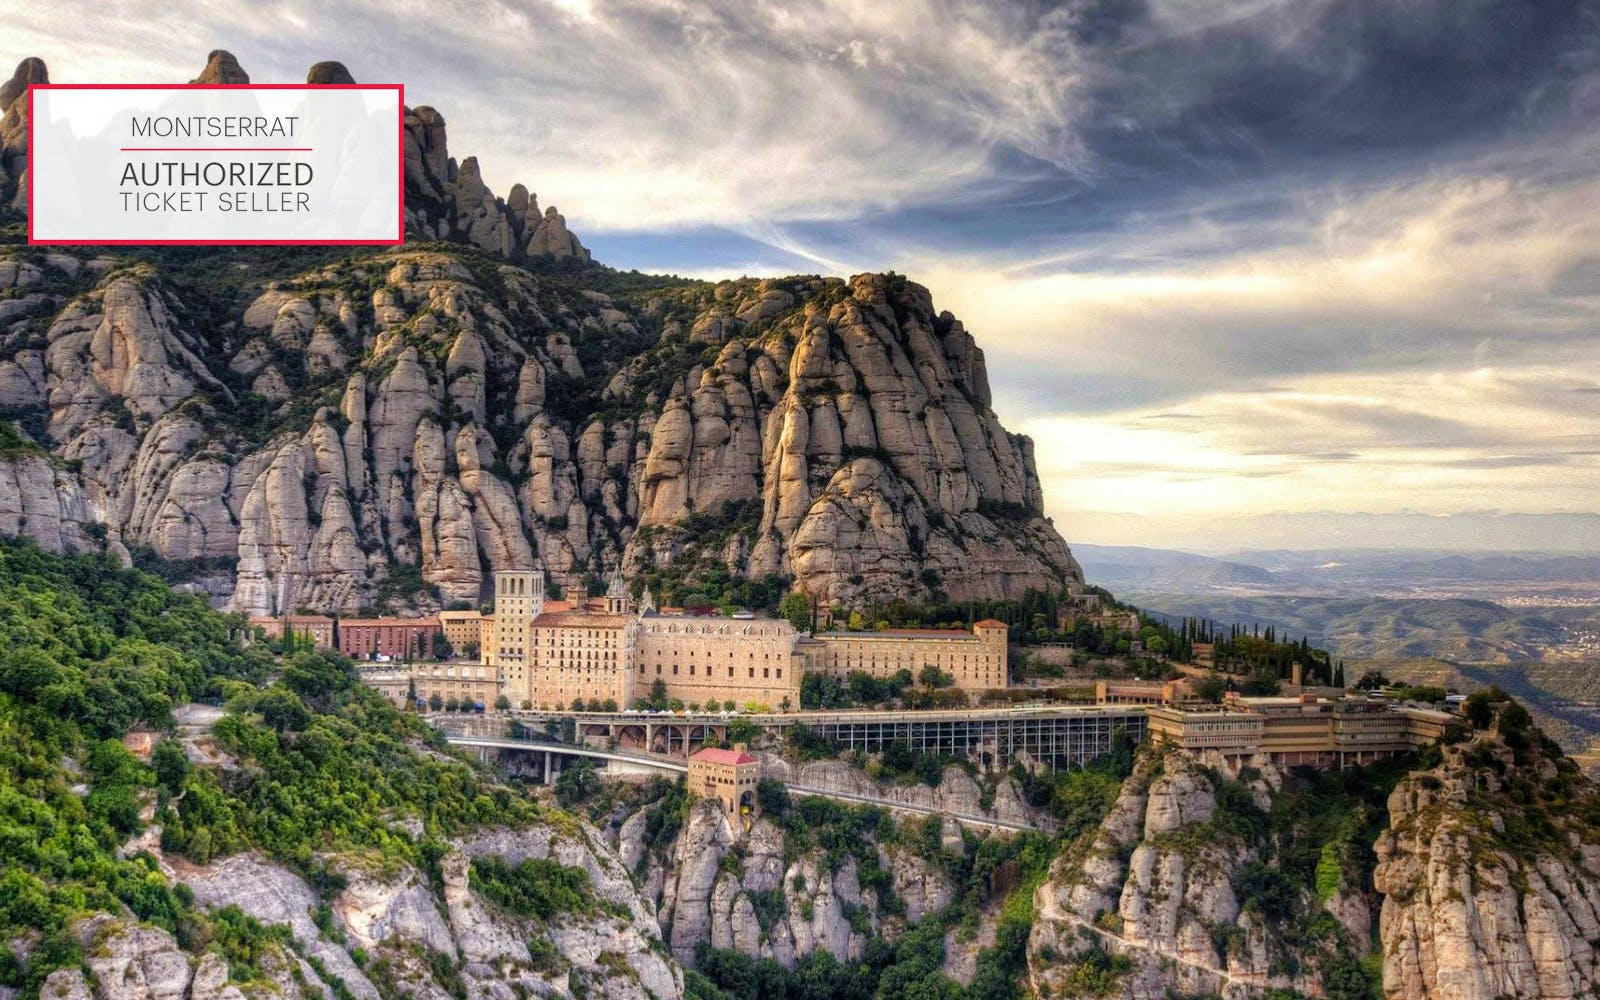 montserrat monastery & museum tickets + transfers from barcelona-1